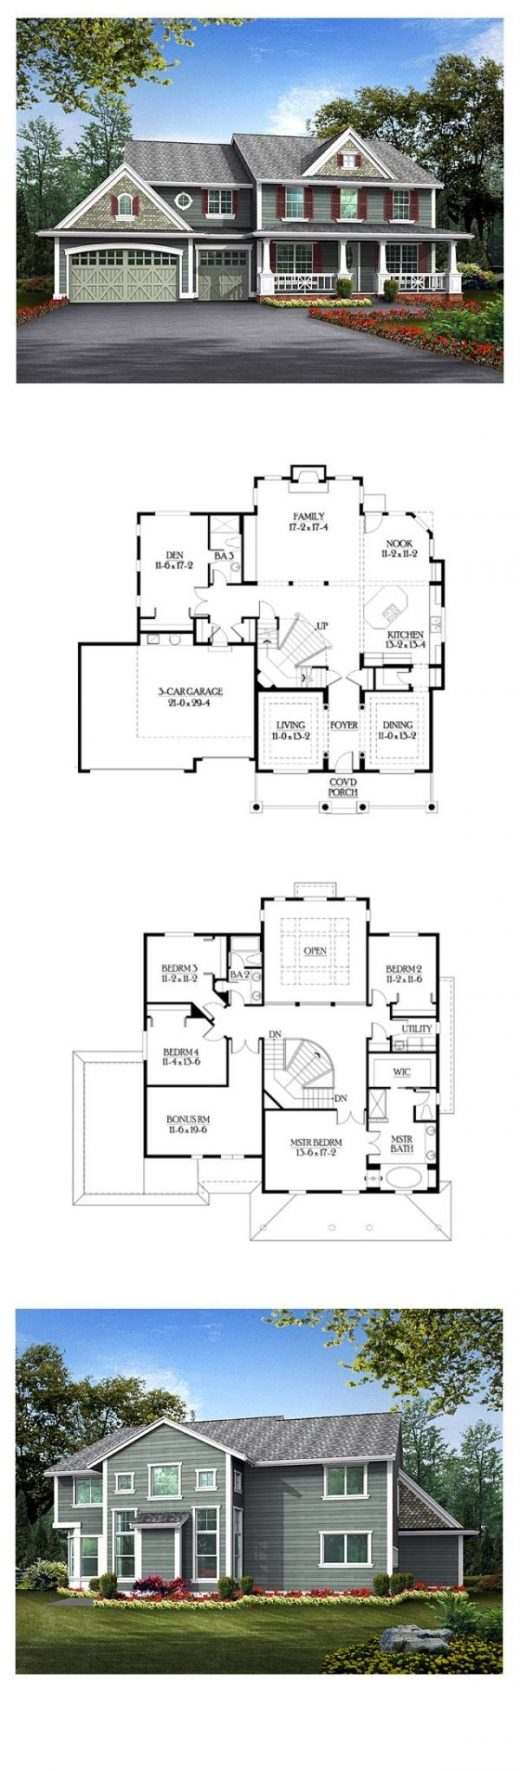 Luxury House Plan 87651 | Total Living Area: 3624 sq. ft., 4 bedrooms & 3 bathro…